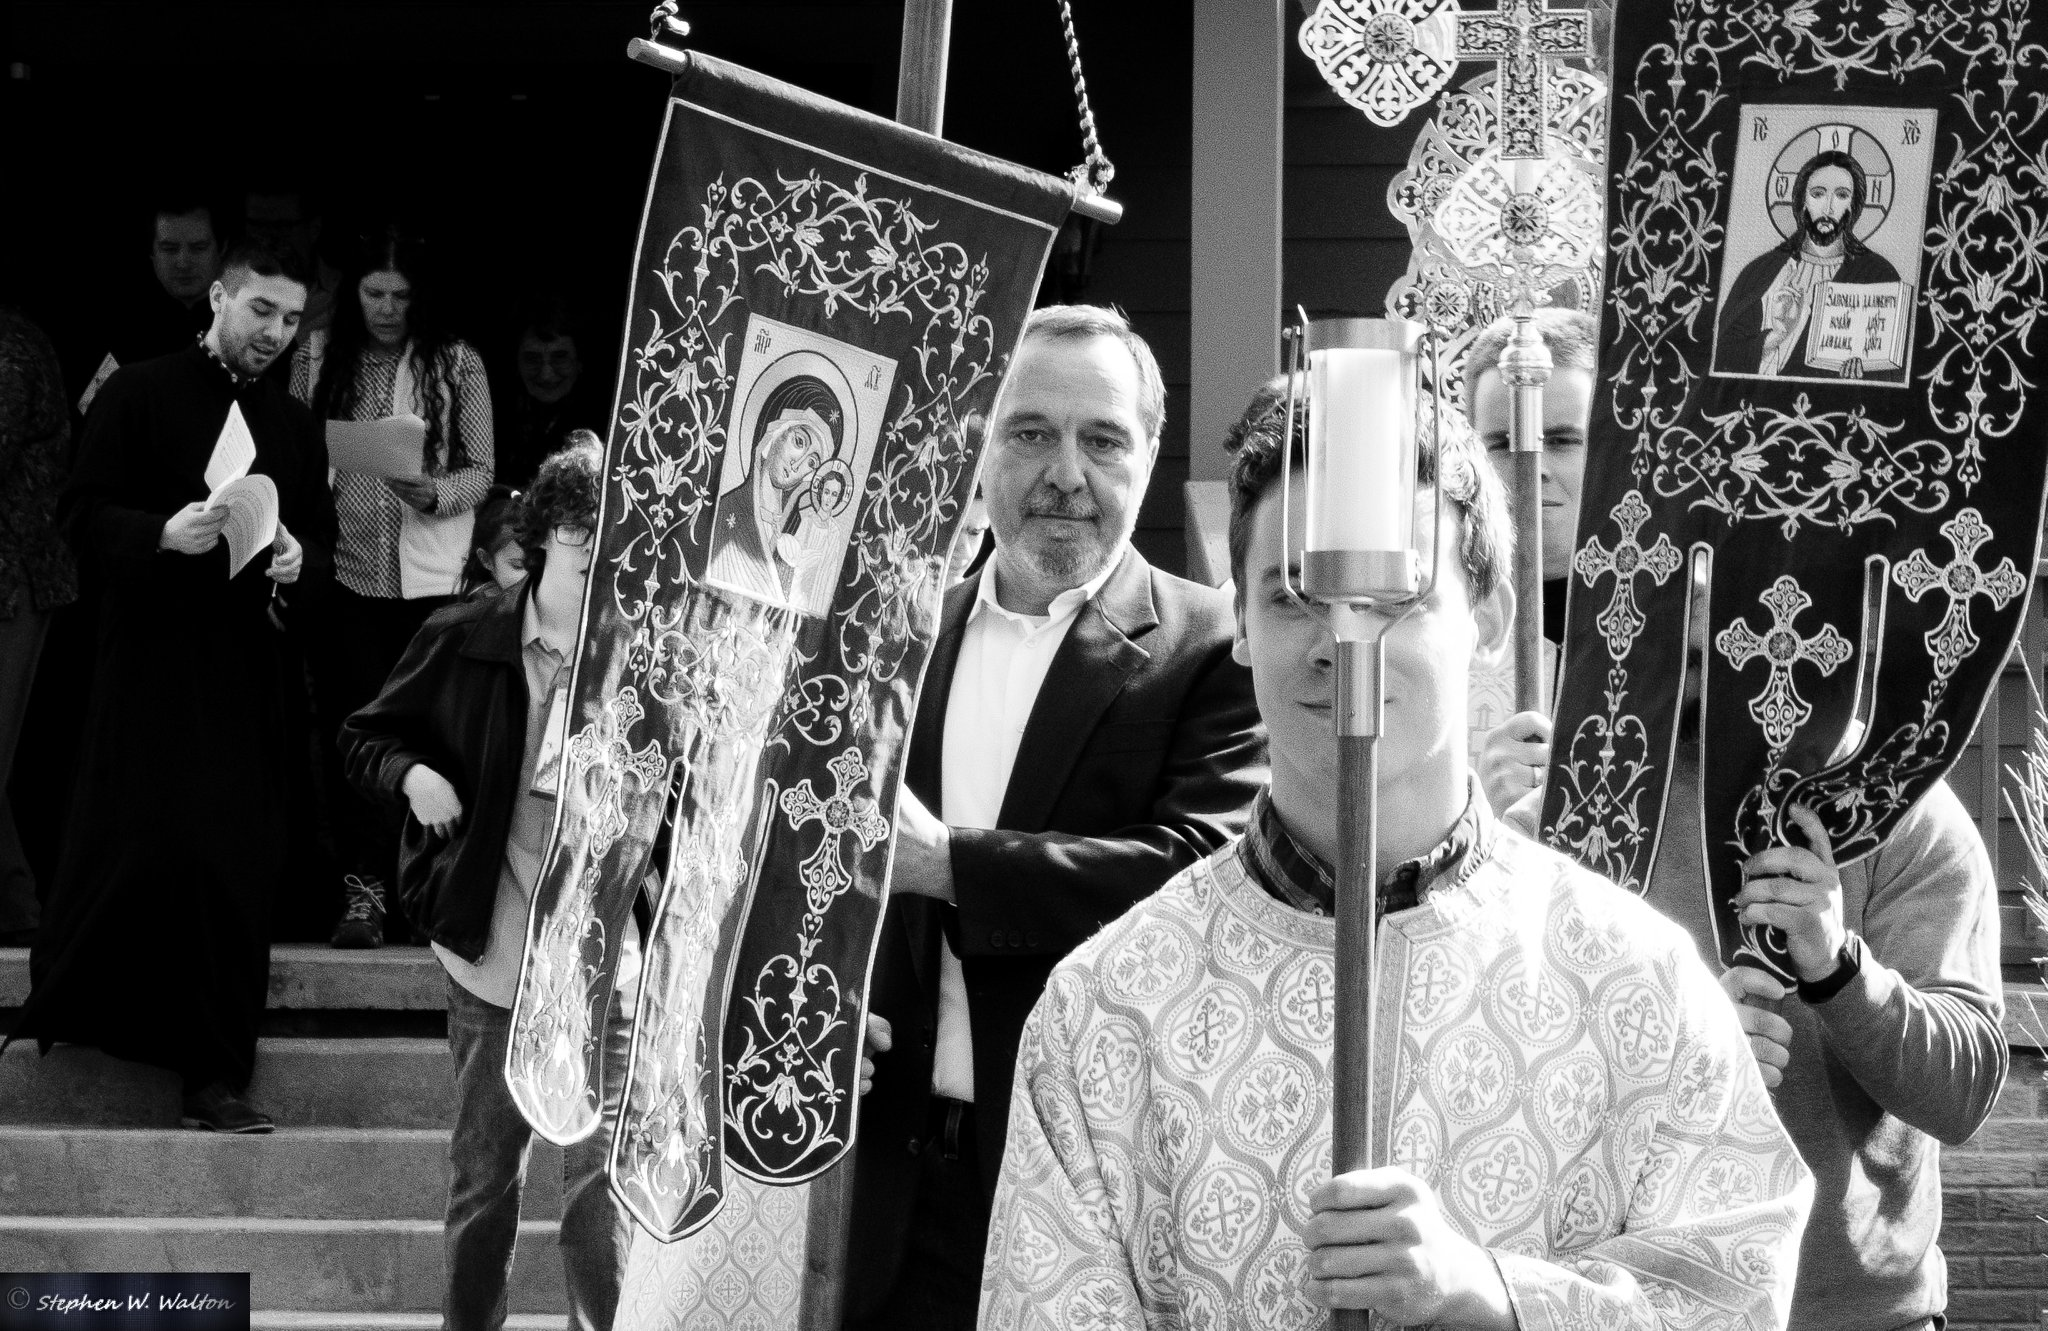 altar server holding candle with parishioners carrying icon banners in procession outside black and white